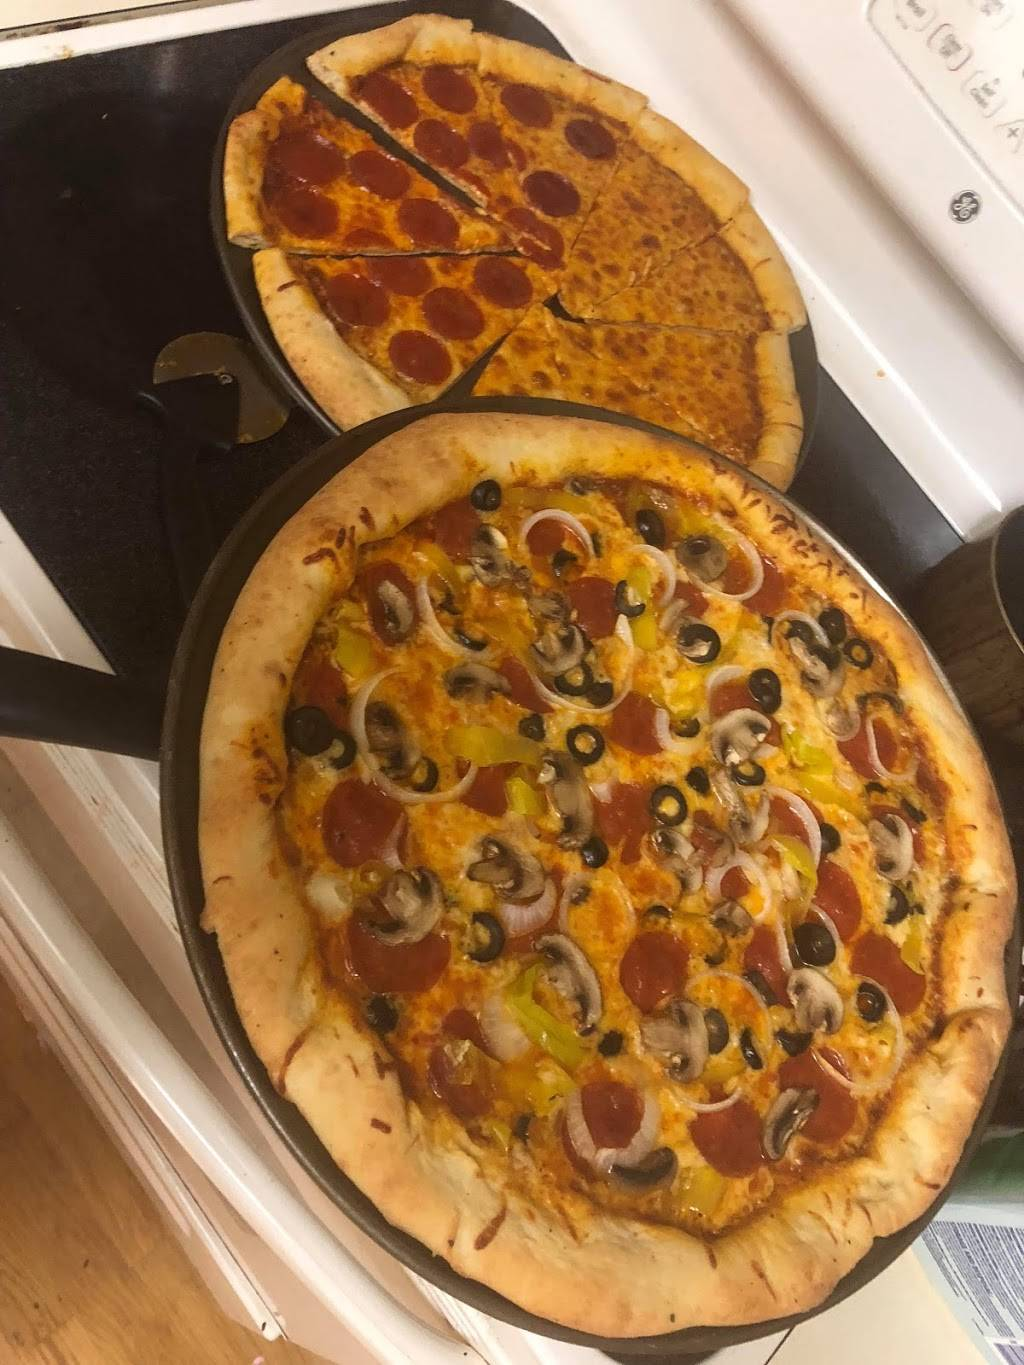 Cristiano's Pizza   meal delivery   5743 Main St, New Port Richey, FL 34652, USA   7278079934 OR +1 727-807-9934